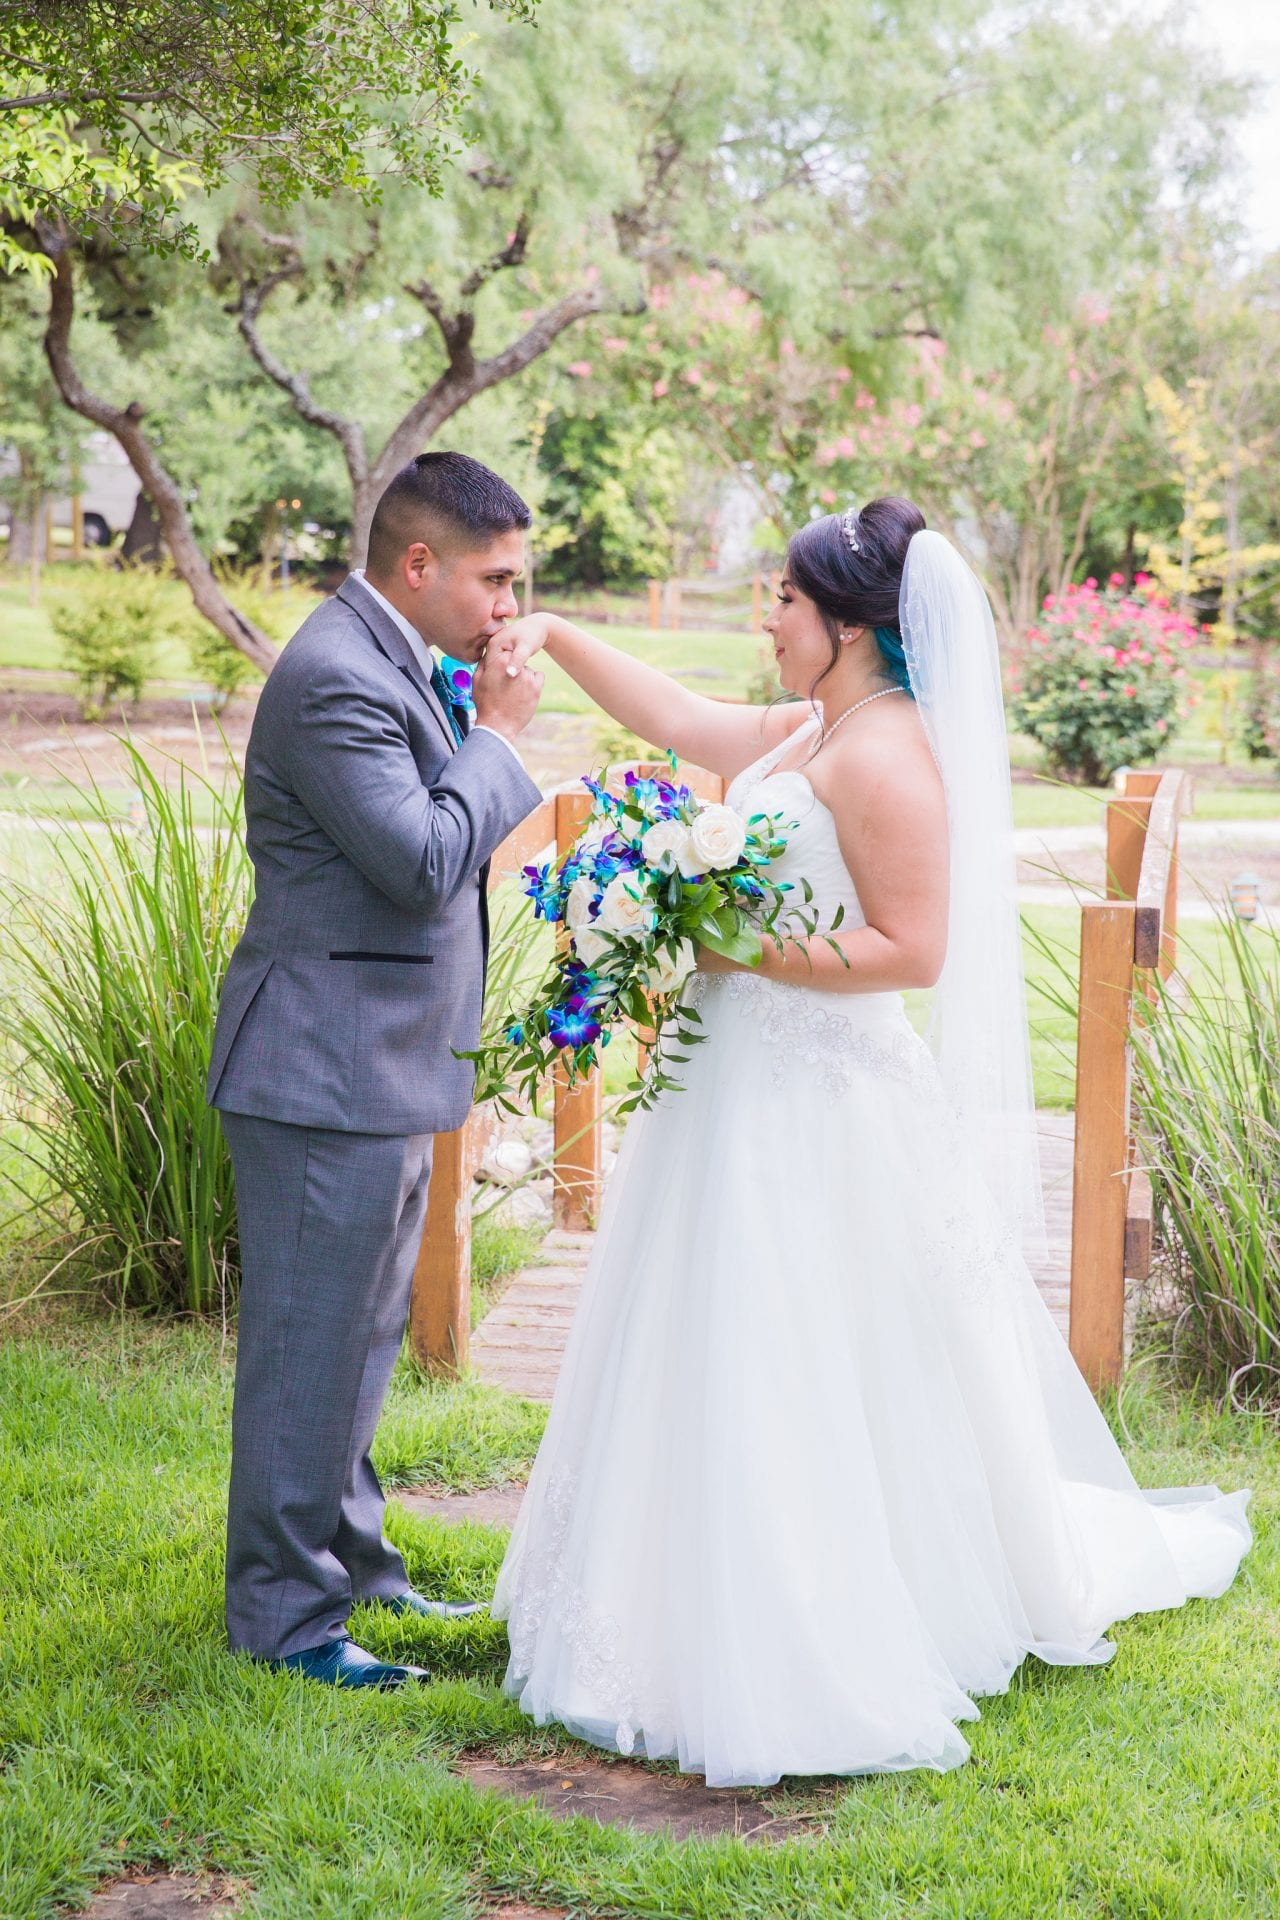 Alex and Adrien Wedding at The Gardens at Old Town hand kiss